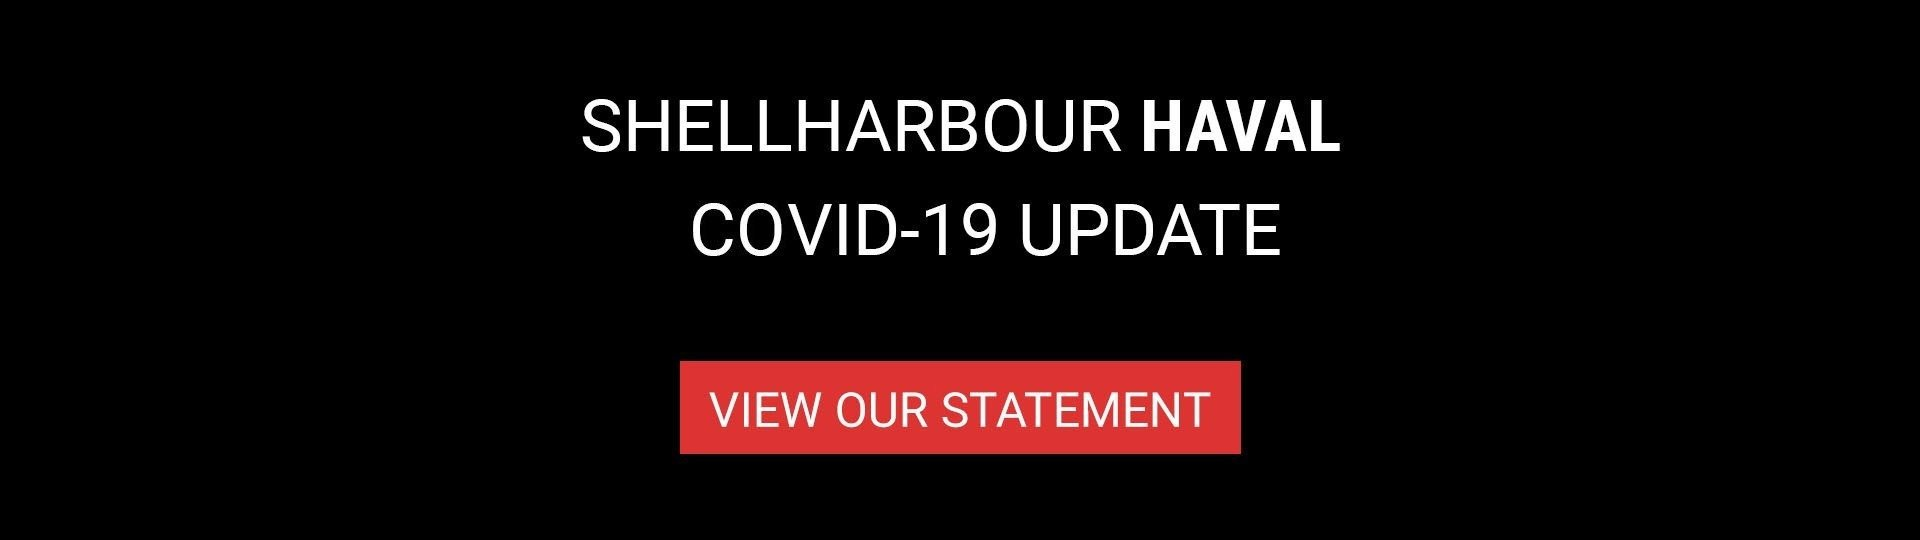 Shellharbour Great Wall - Covid-19 Statement